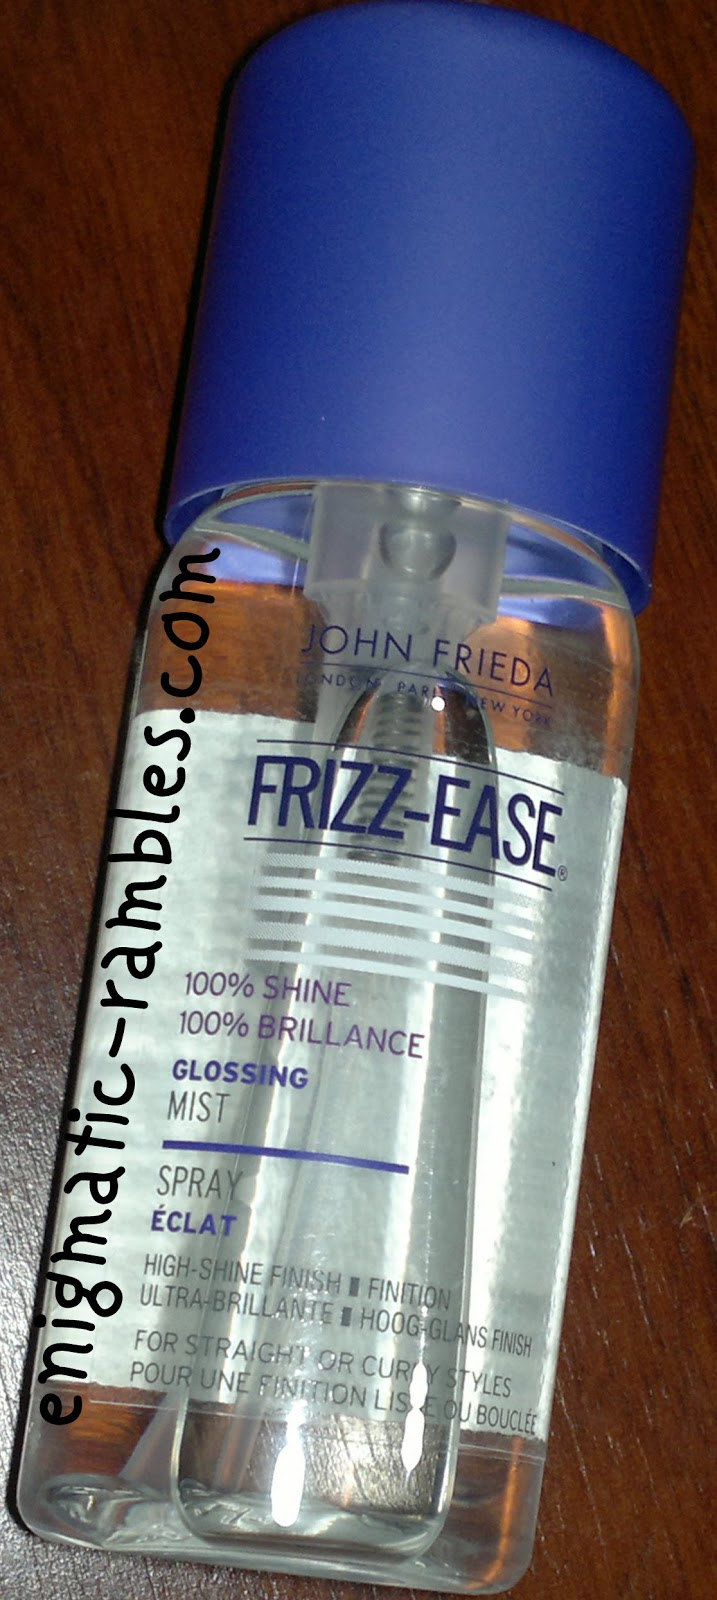 review-John-Frieda-Frizz-Ease-Glossing-Mist